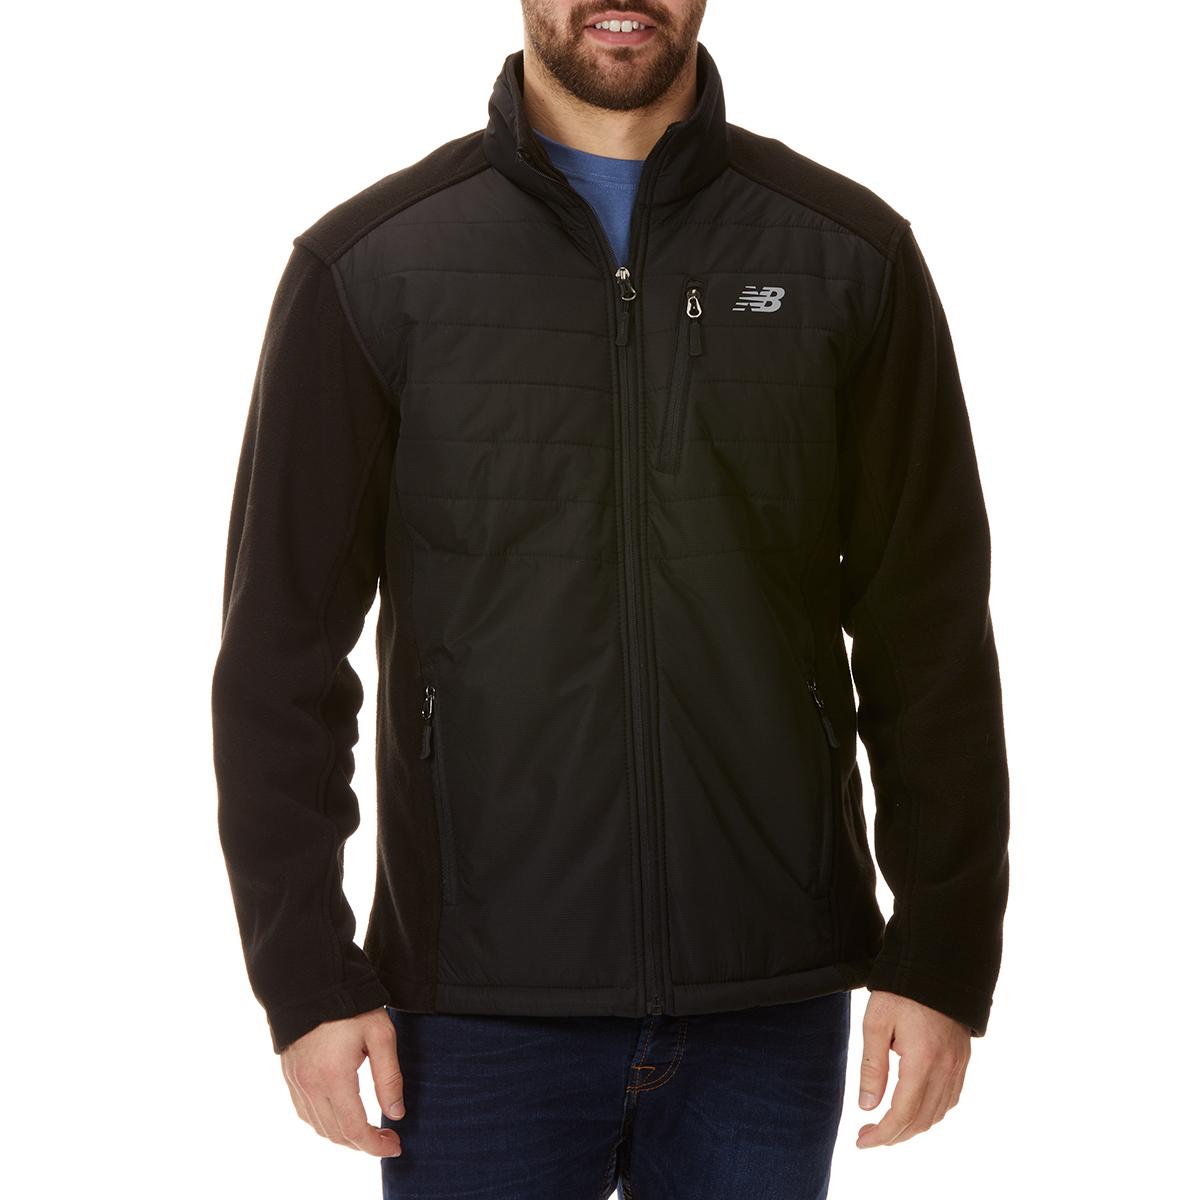 New Balance Men's Dobby Overlay Polar Fleece Jacket - Black, L